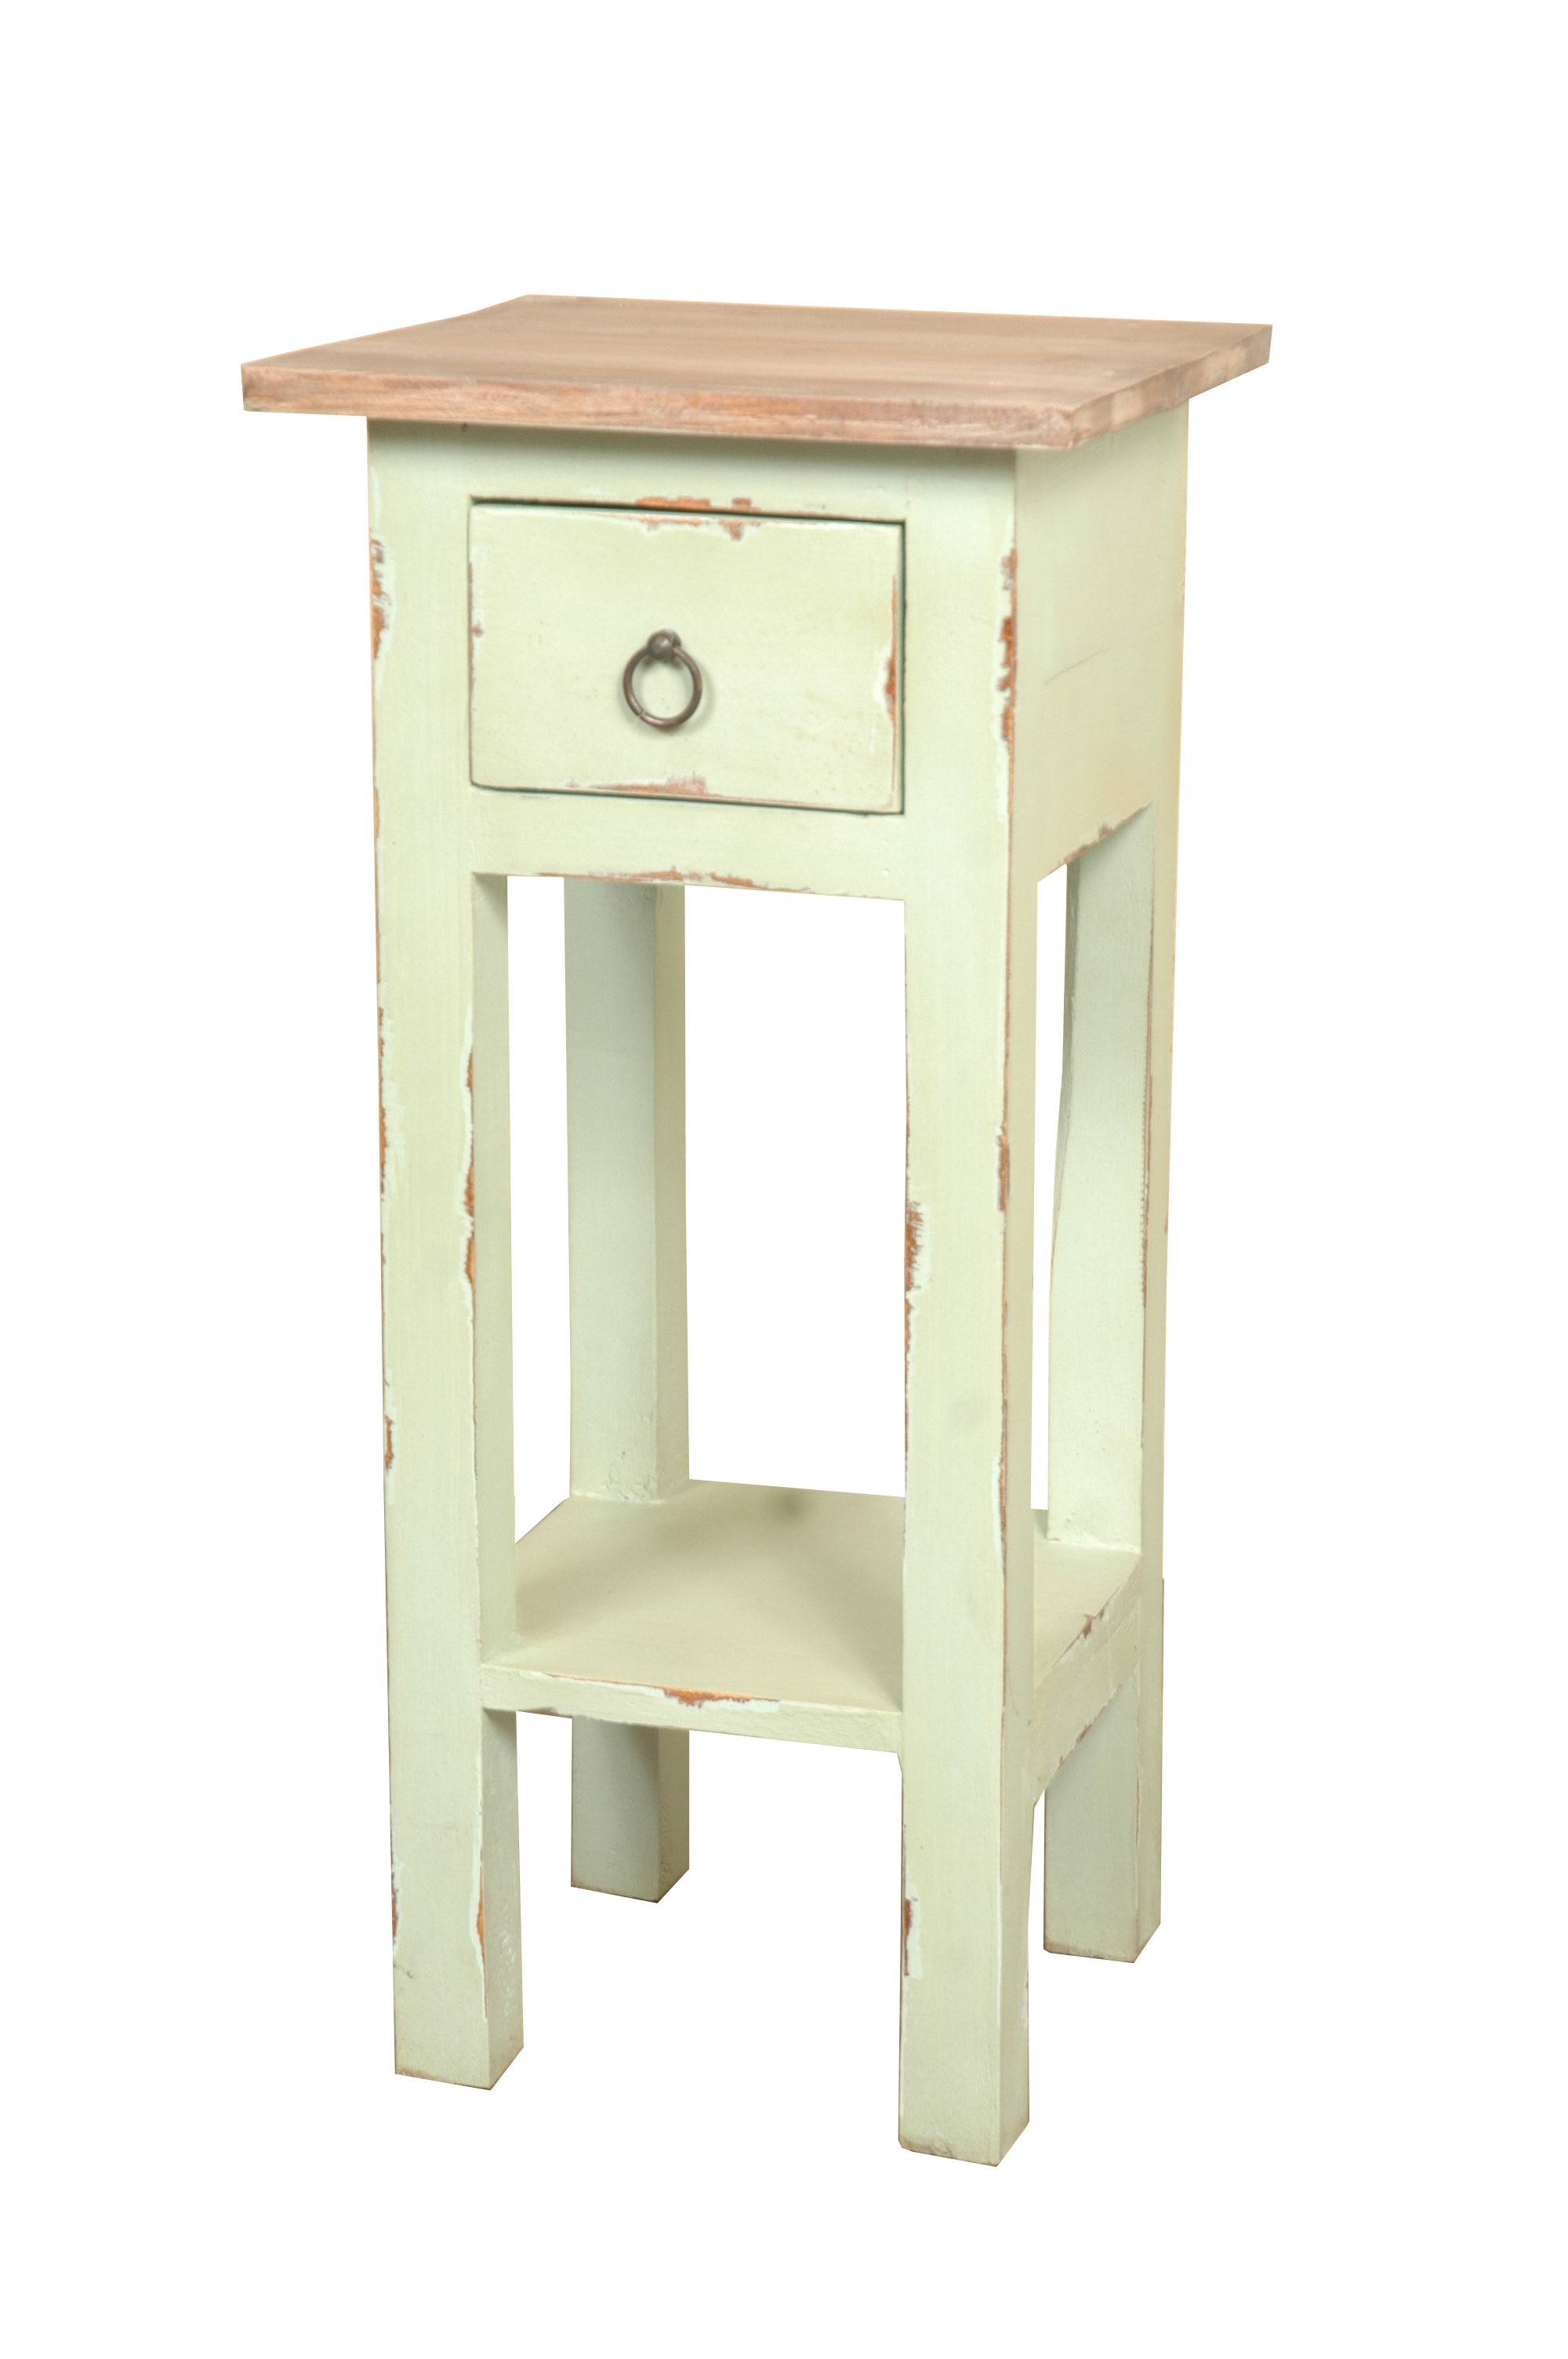 sunset trading cottage narrow side table bmlw very accent lawn crystal lamps west elm bedroom furniture square glass drum distressed wood coffee and end tables blue kitchen decor